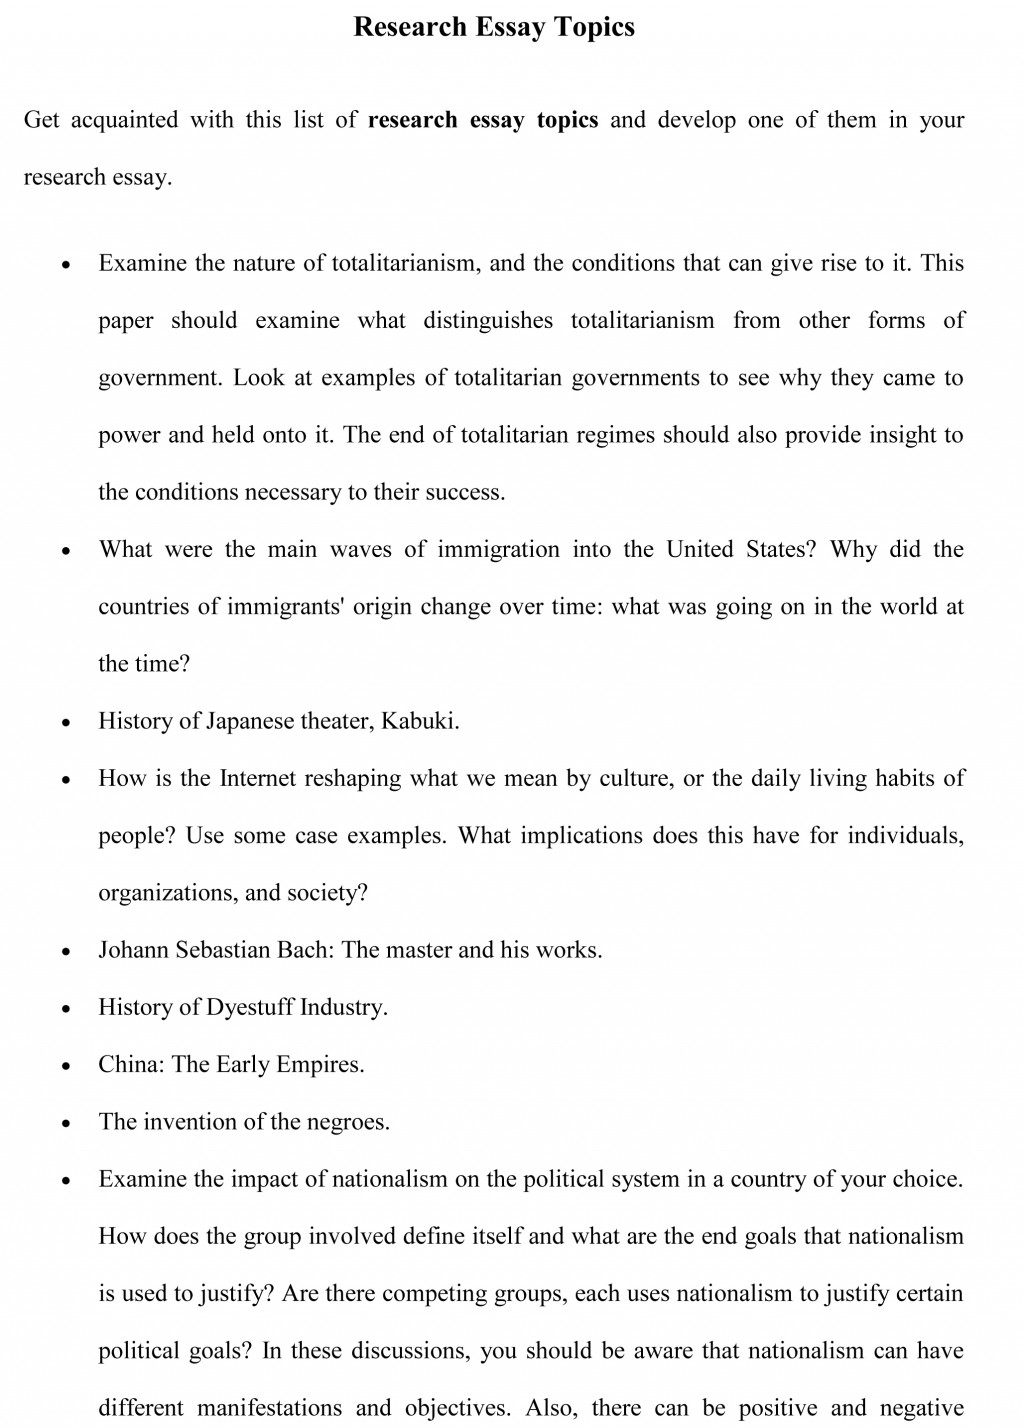 011 Research Paper Essay Topics Sample Chinese Awful Economy Large